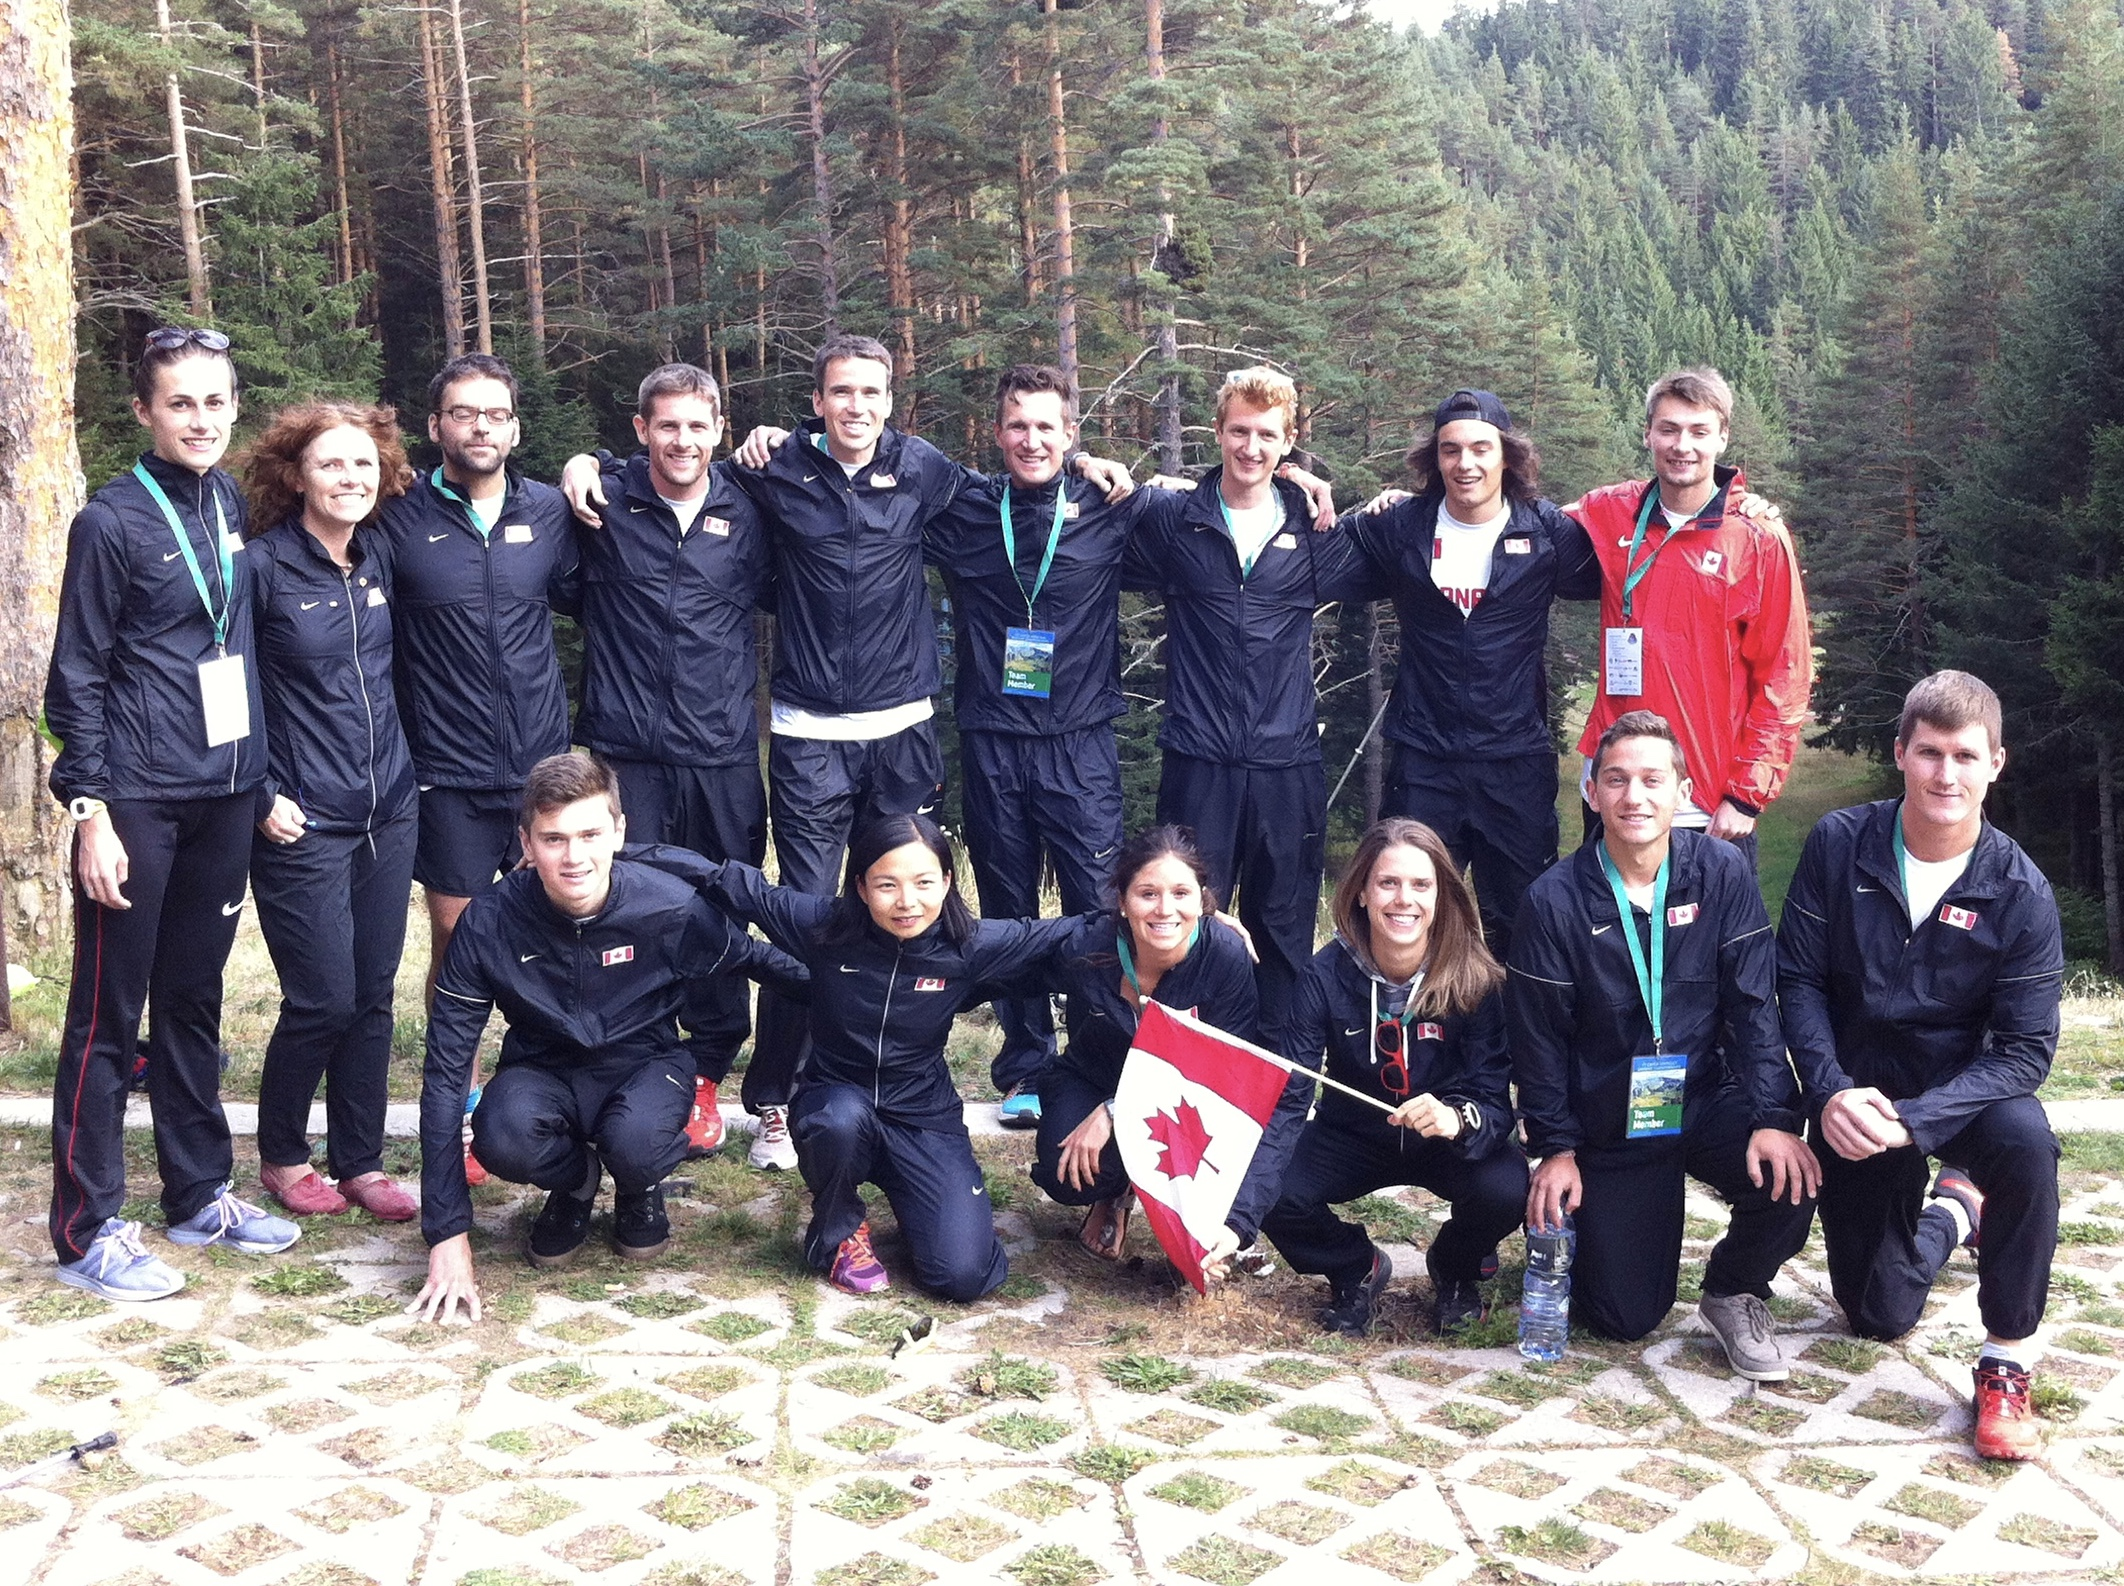 Canadian Mountain Running Team 2016 (Back Row L to R: Adele Blaise, Sue Lambert (Team Manager), Benoit Gignac, Mike McMillan, Kris Swanson, Mark Vollmer, Shaun Stephens-Whale, Emmanuel Mercier, Greg Hetterley. Front Row L to R: Aidan Doherty, Mirabelle Tinio, Marianne Hogan, Ashley Ramsay, Mitchell Cauchi, Matt Setlack)